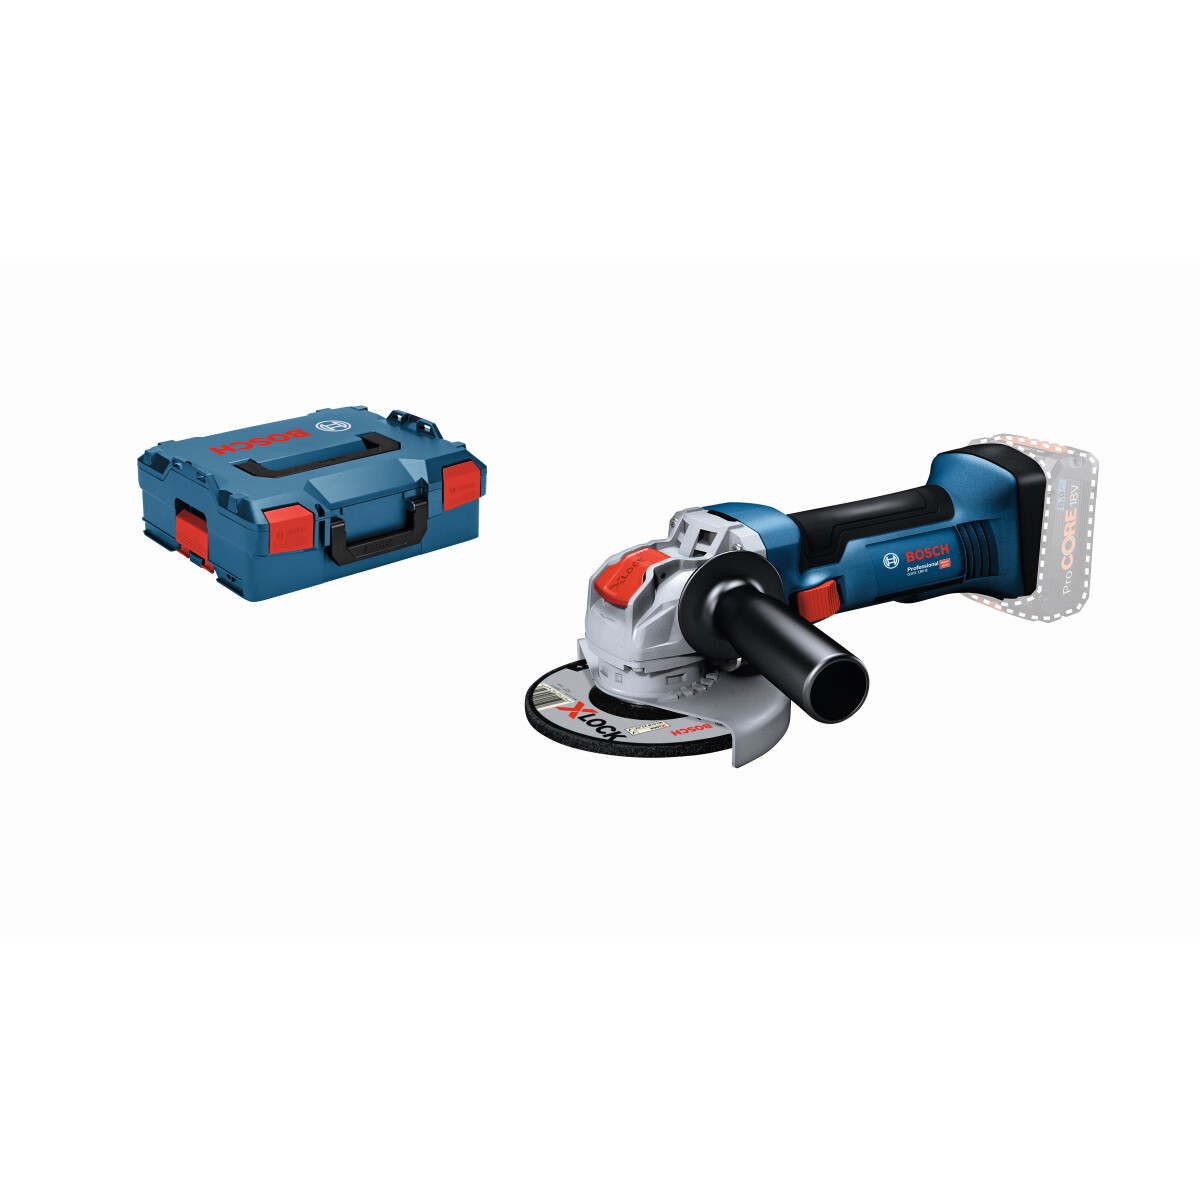 Bosch GWX 18V-8 Body Only 18v X-LOCK 125mm Angle Grinder (Body Only) in L-Boxx